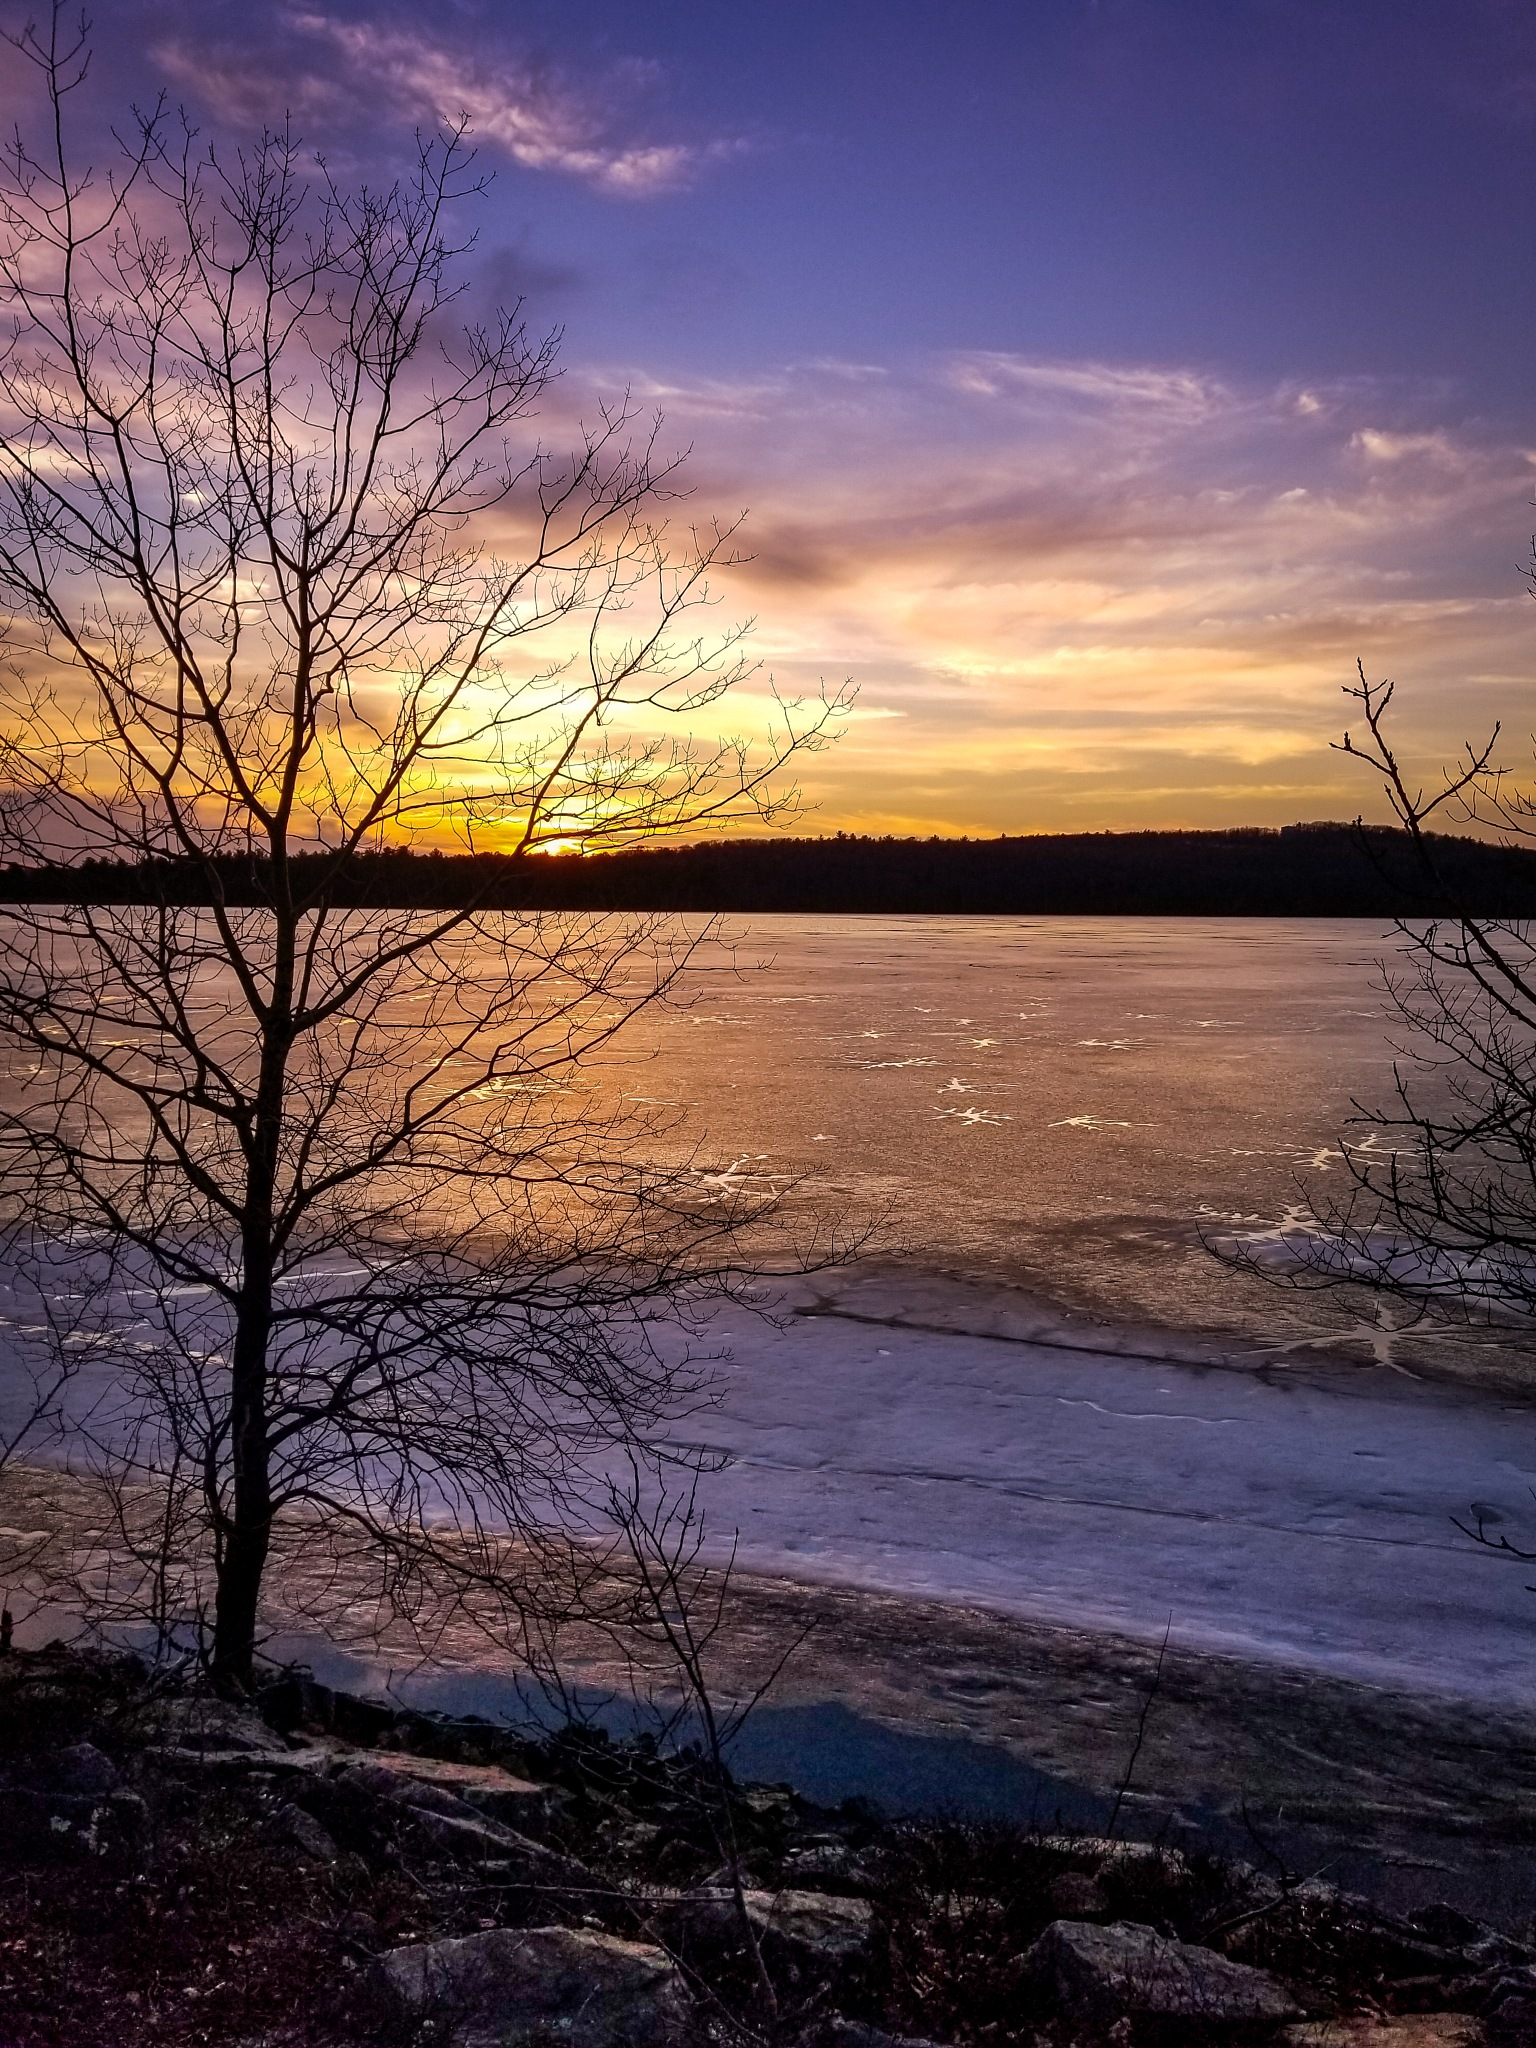 Sunset over a frozen lake by Mike Figueiredo